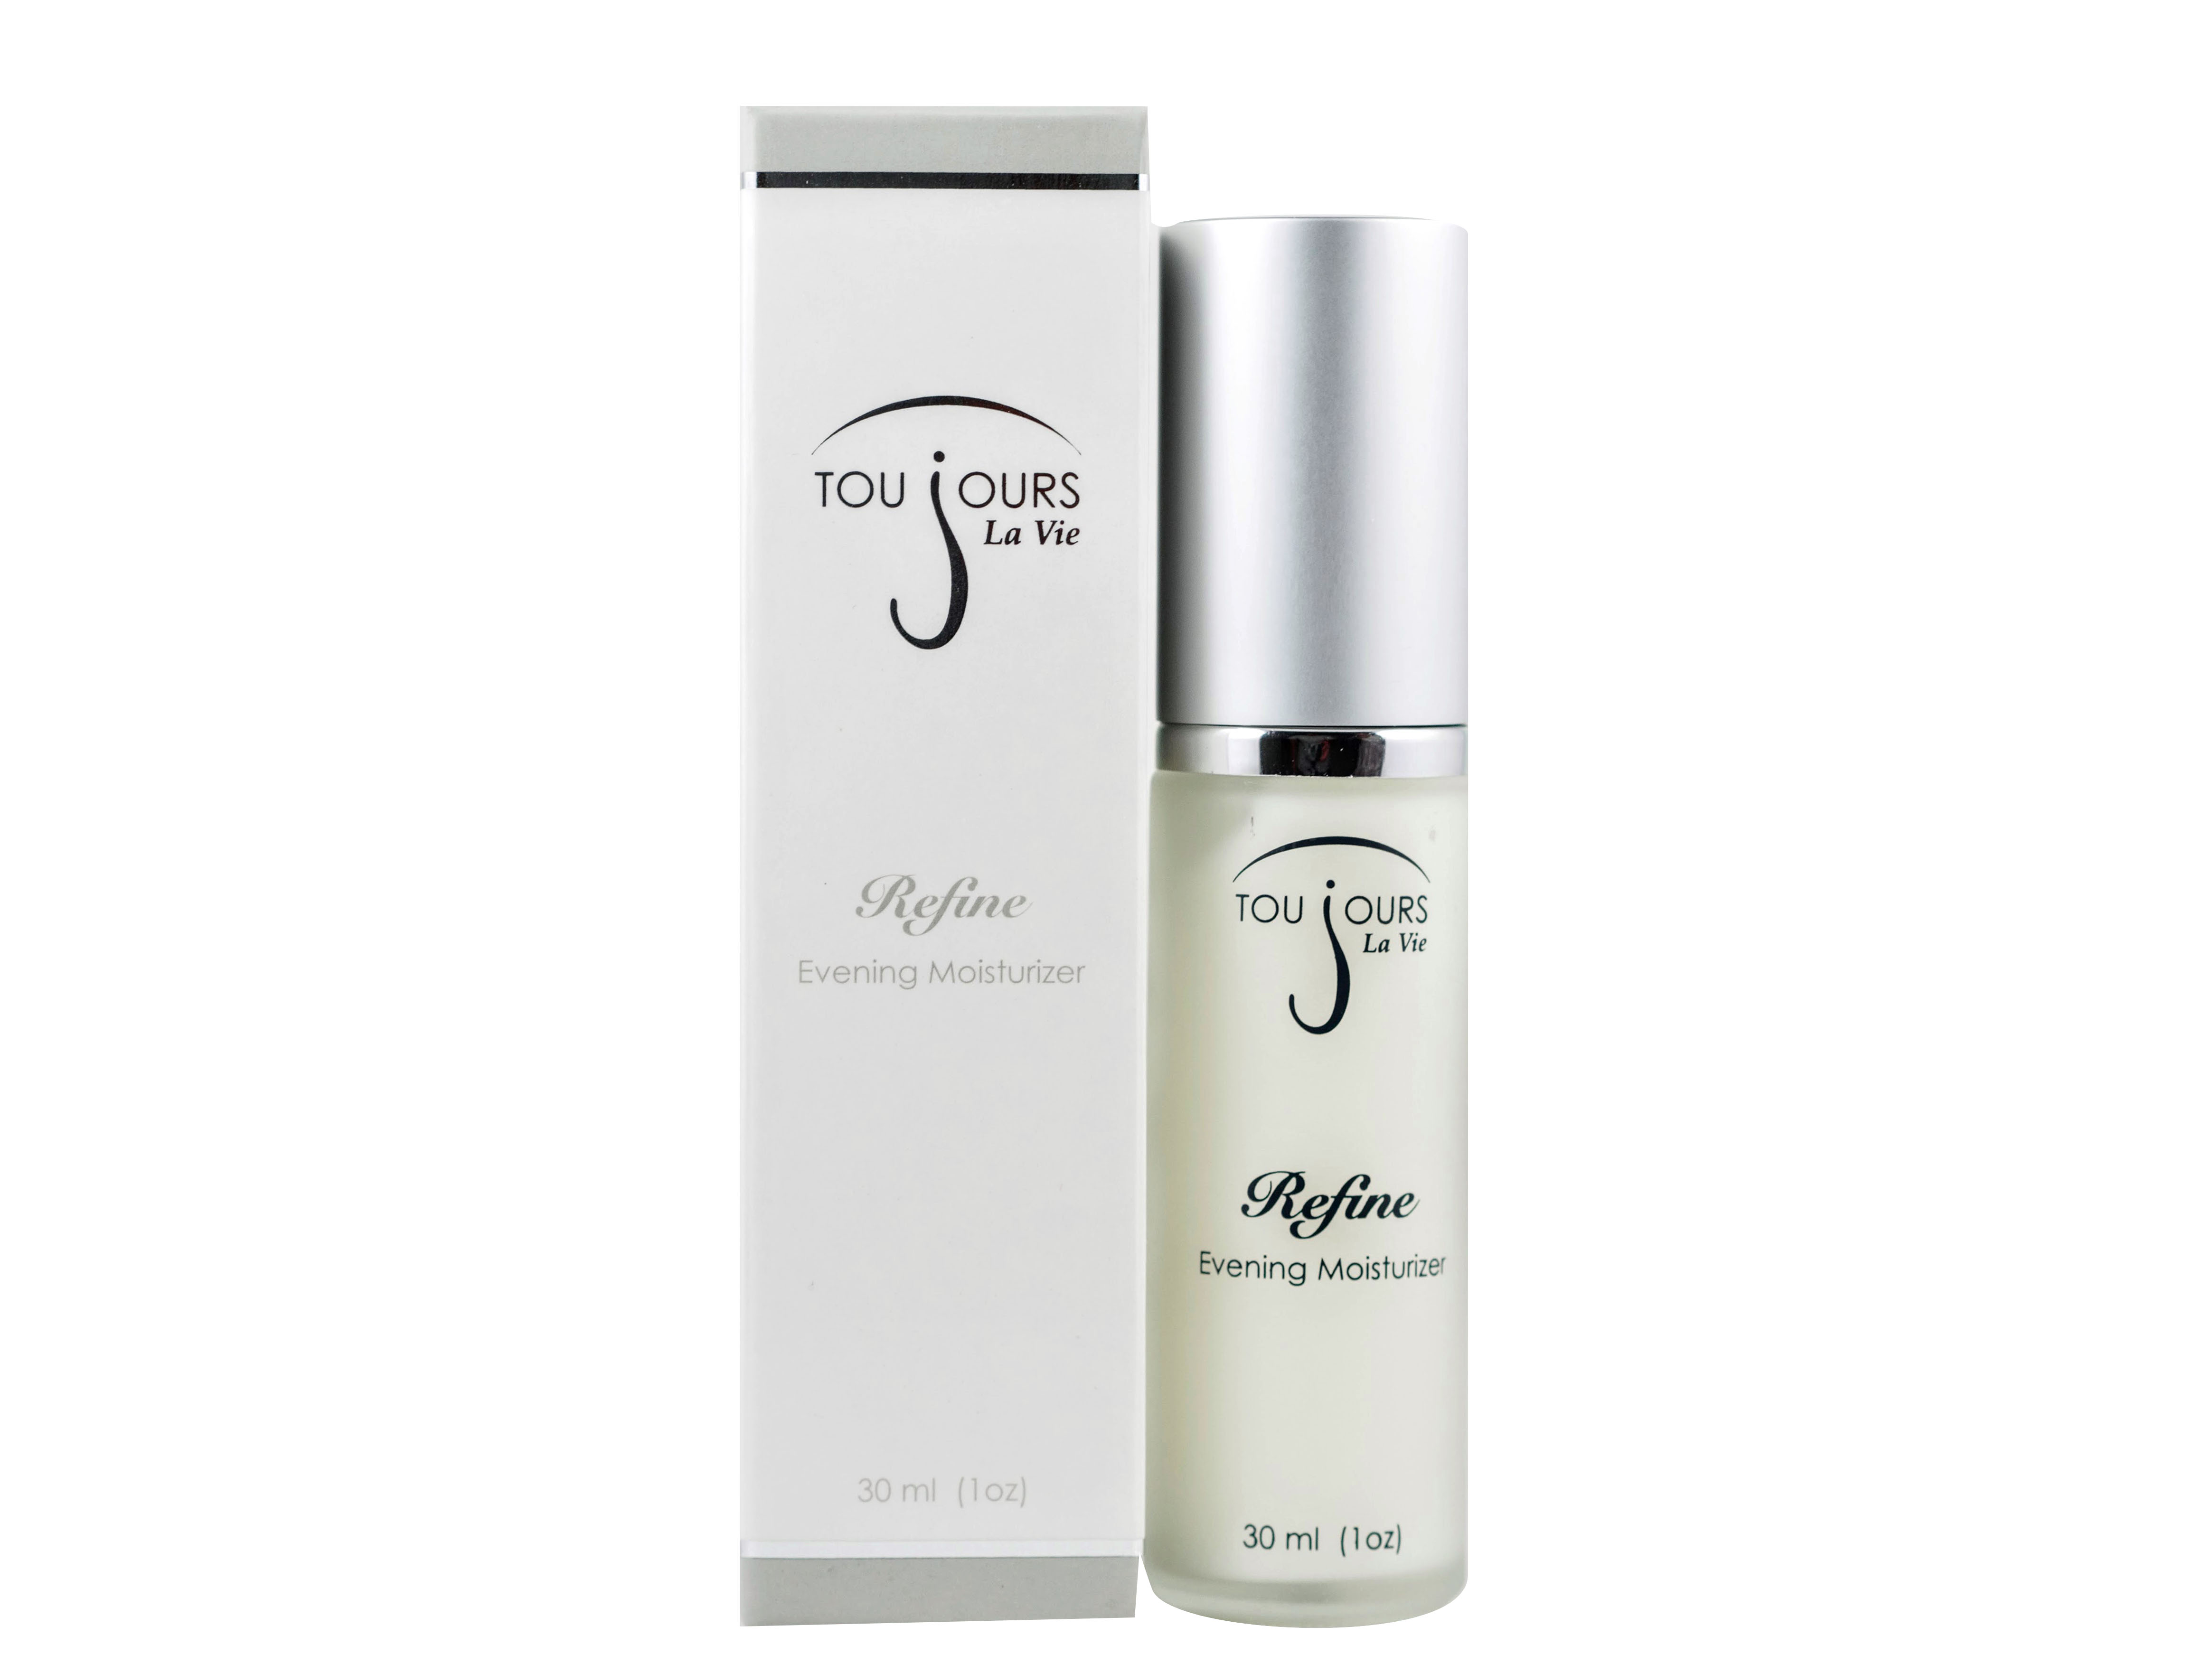 Toujours La Vie - Refine - Evening Moisturizer (30ml/1oz)